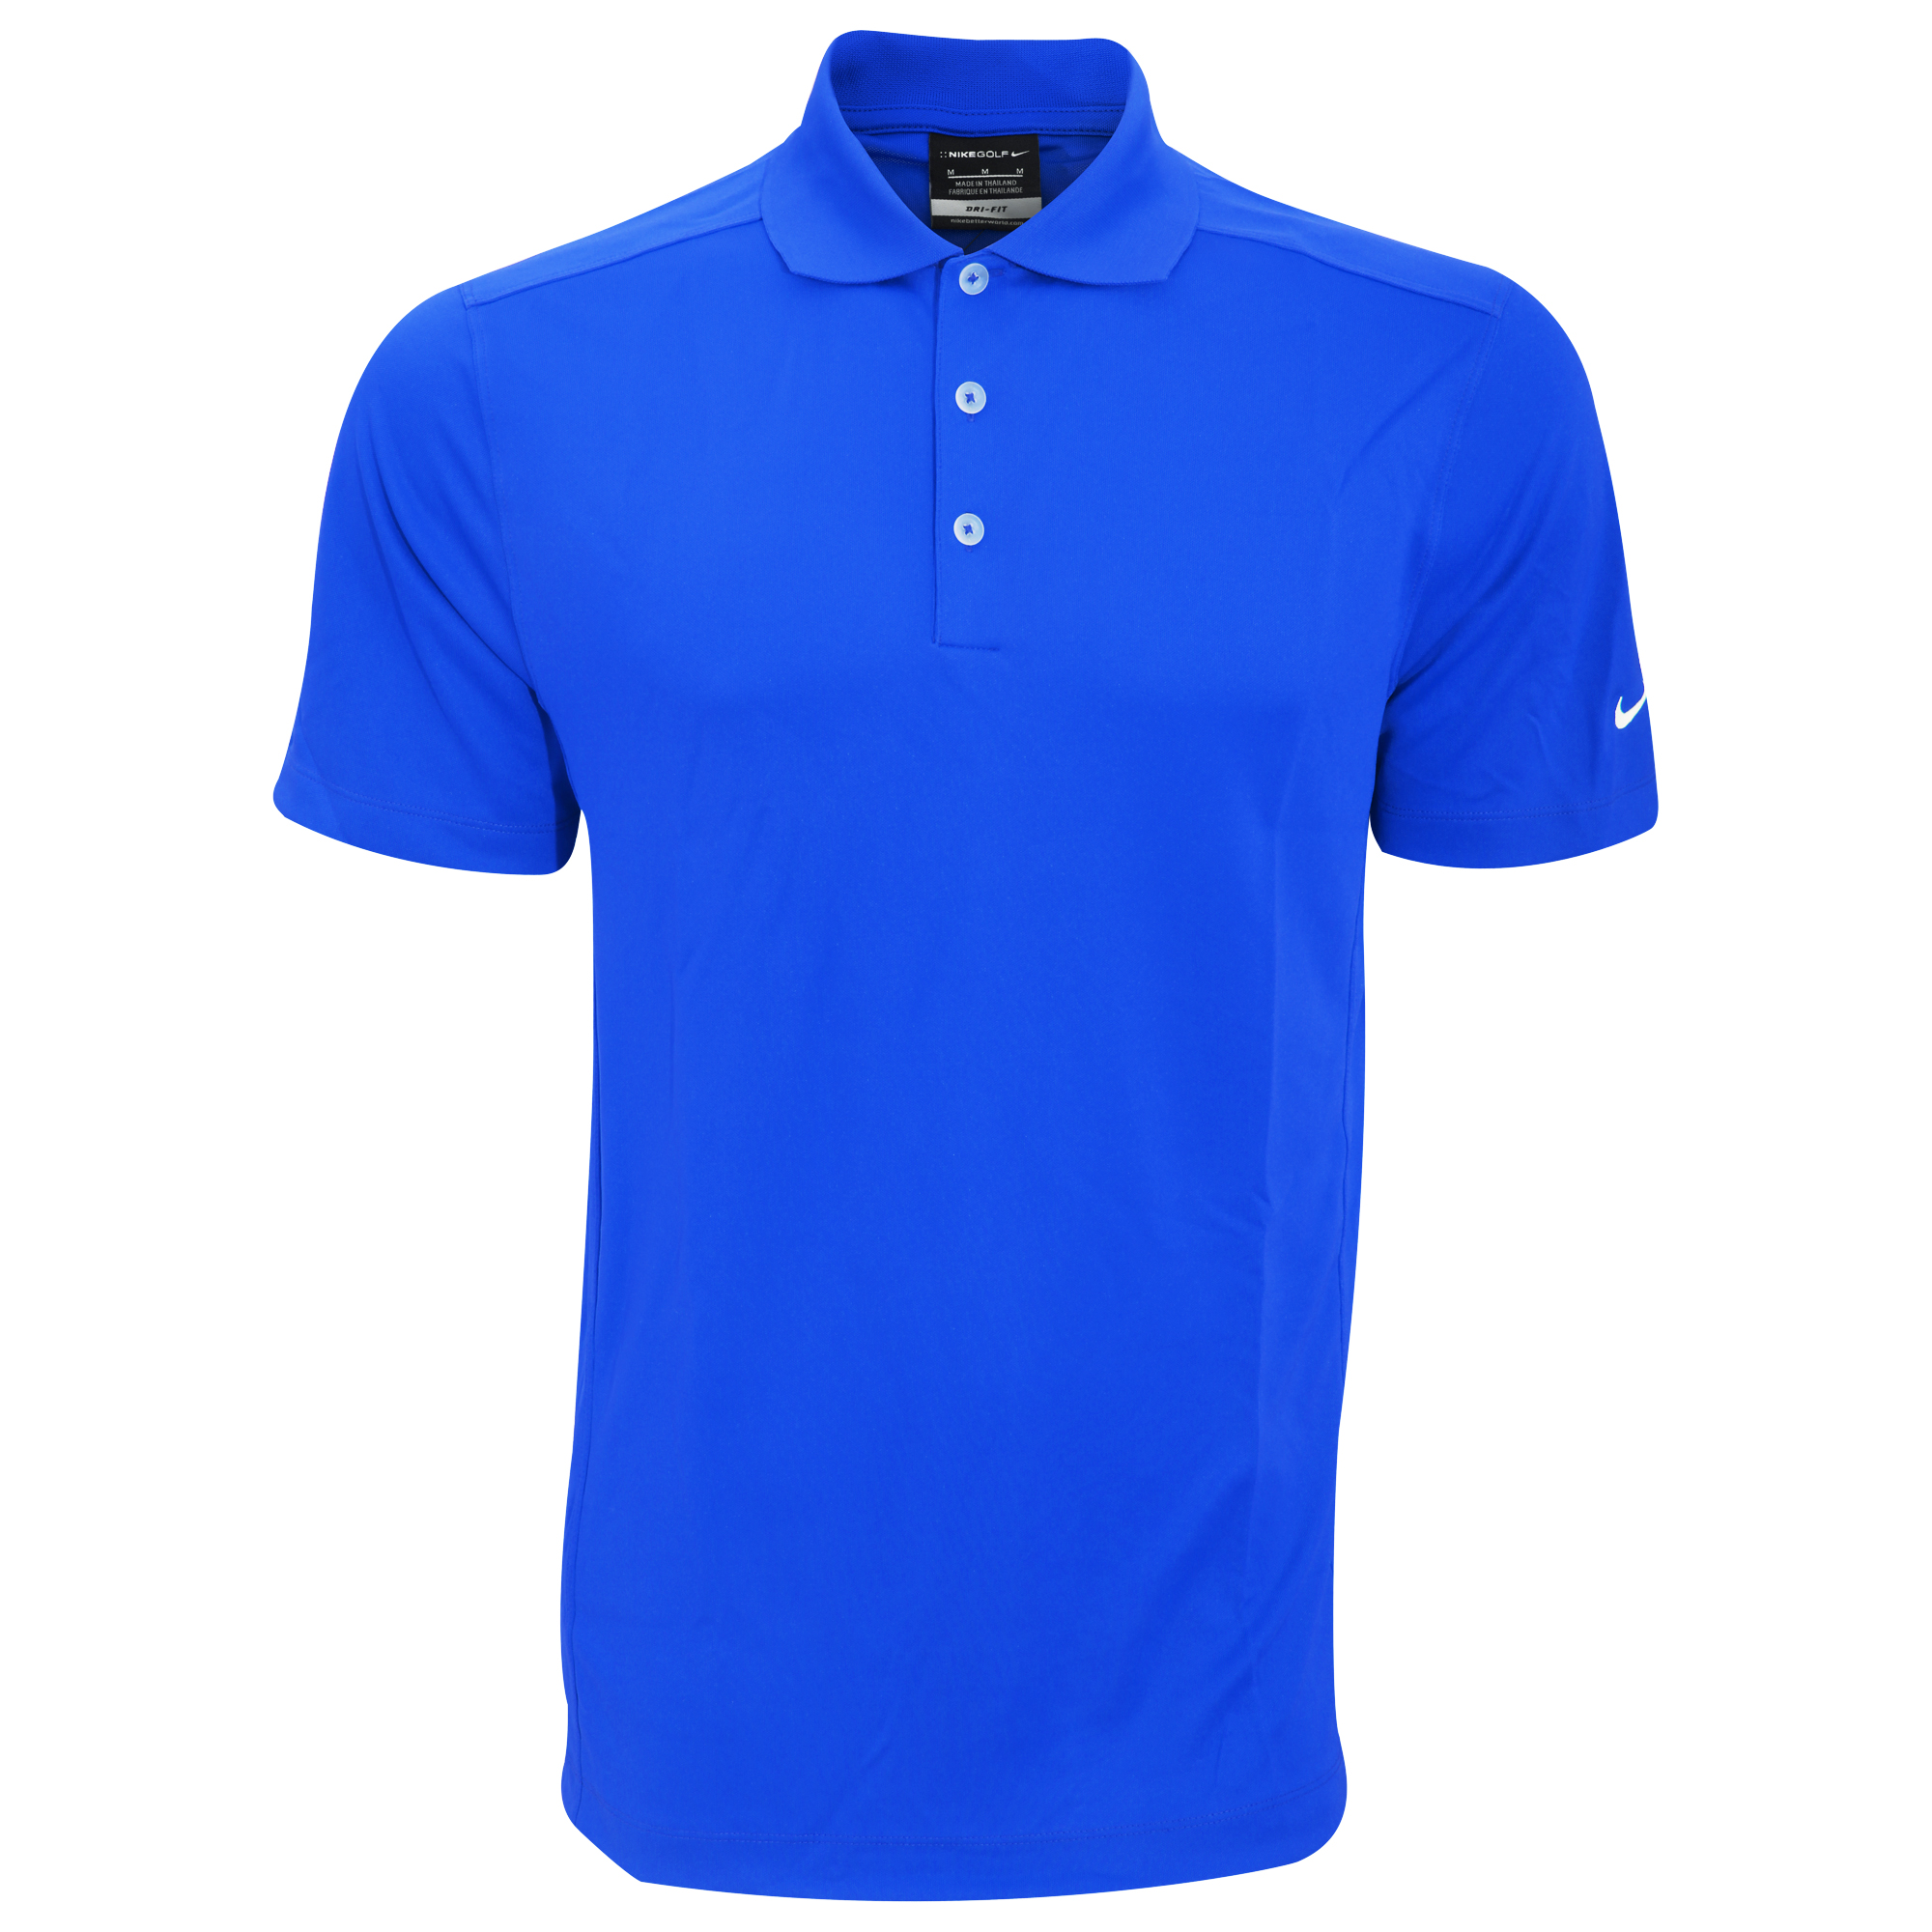 Nike golf mens smu plain solid knit short sleeve polo for Big tall nike golf shirts